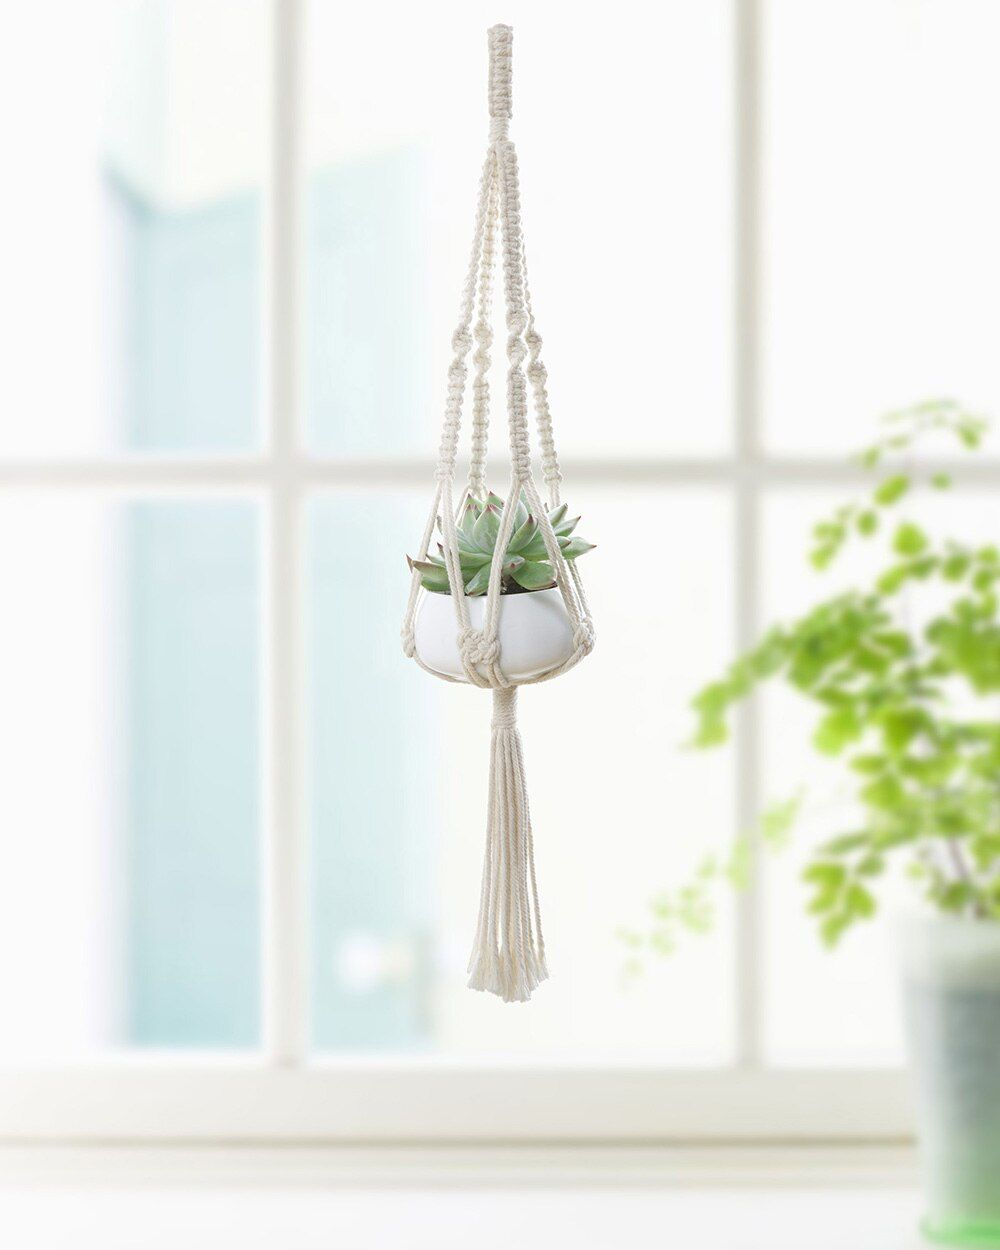 Mini Hanging Macrame Plant Hanger Planter Holder with Garden Succulent Pot for Indoor Outdoor Decoration, Cotton, 19 Inch(48cm)